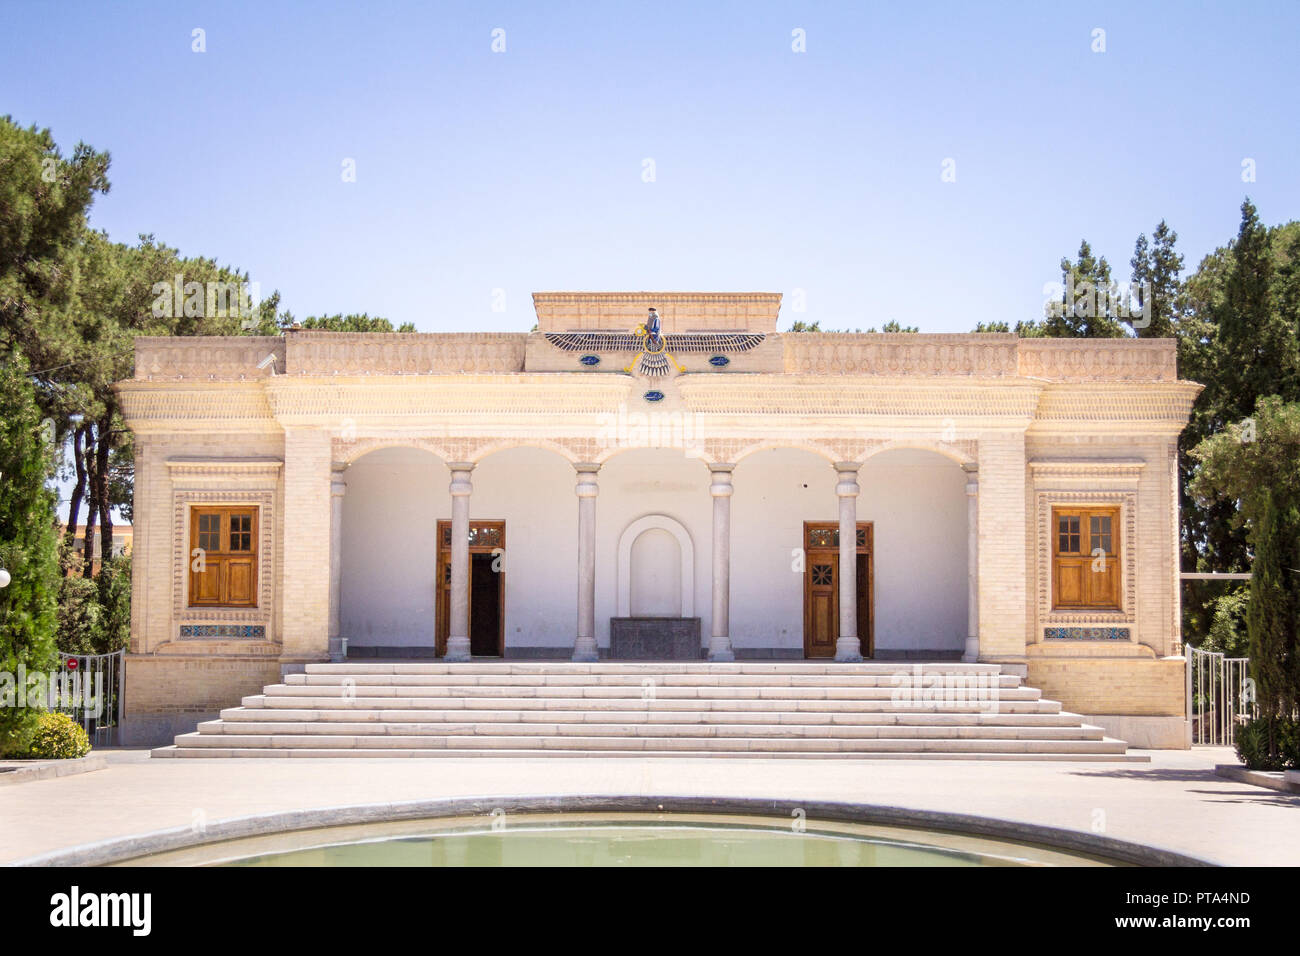 Fire temple in Yazd, Iran, seen from its exterior park. A fire temple in Zoroastrianism is the place of worship for Zoroastrians. The one of Yazd is a - Stock Image